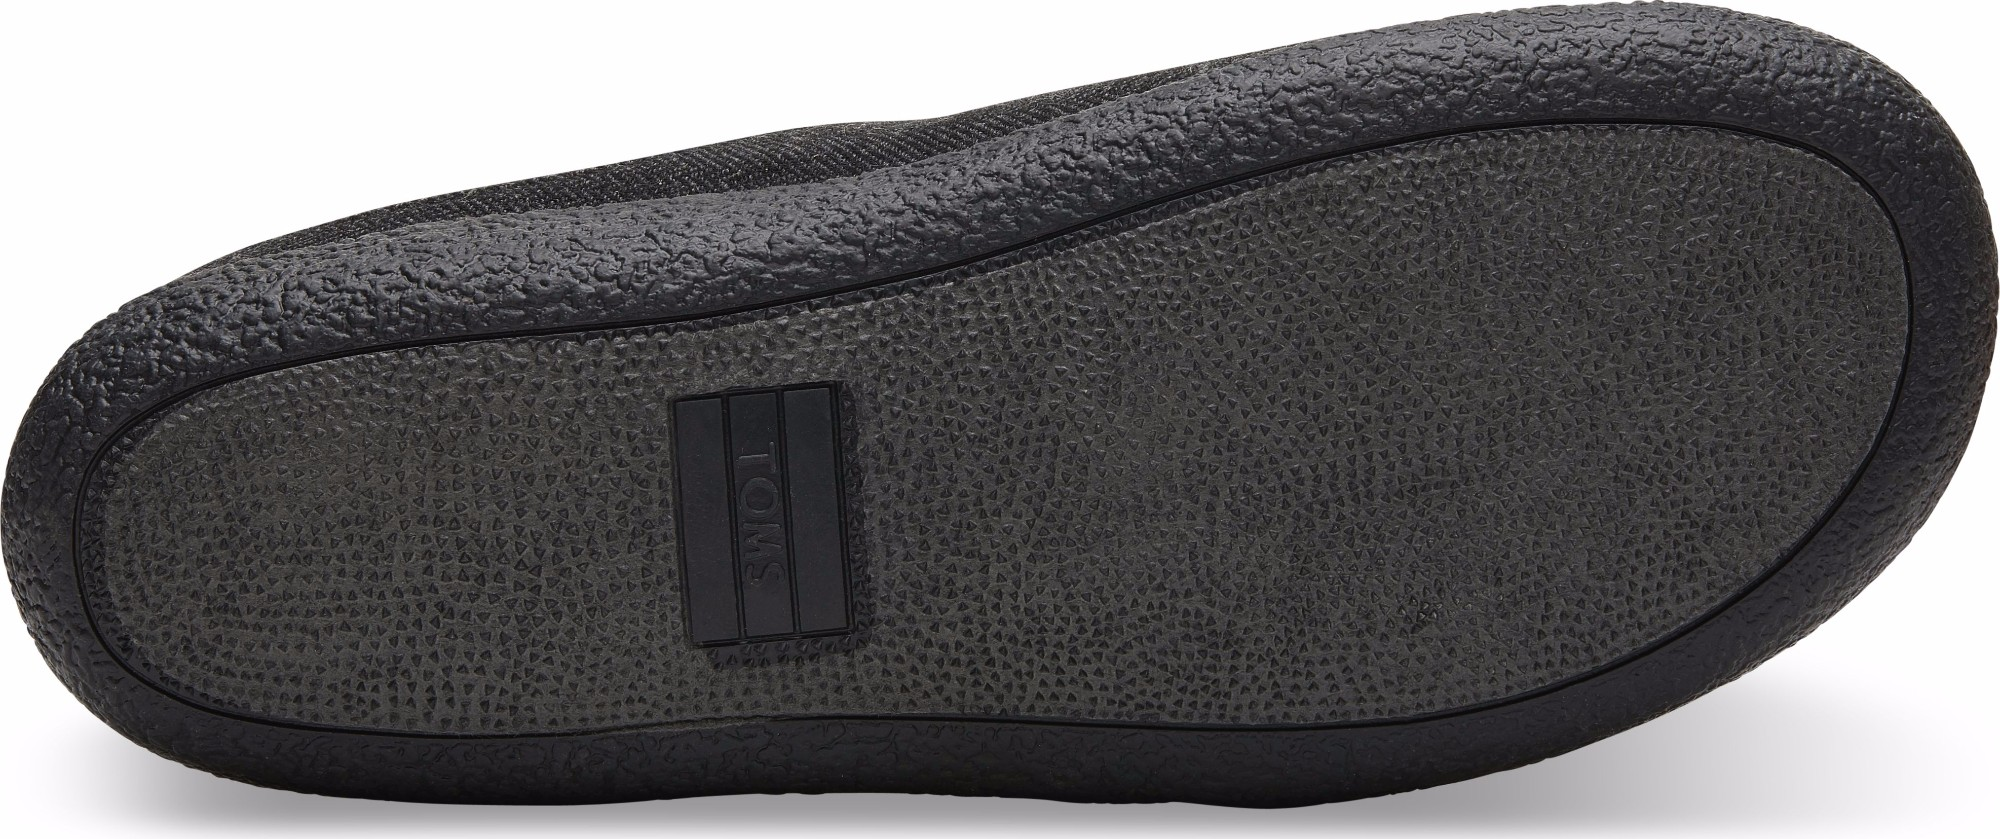 3074f0da1d1f Previous. TOMS Herringbone Woolen Men S Berkeley Slipper Black ...